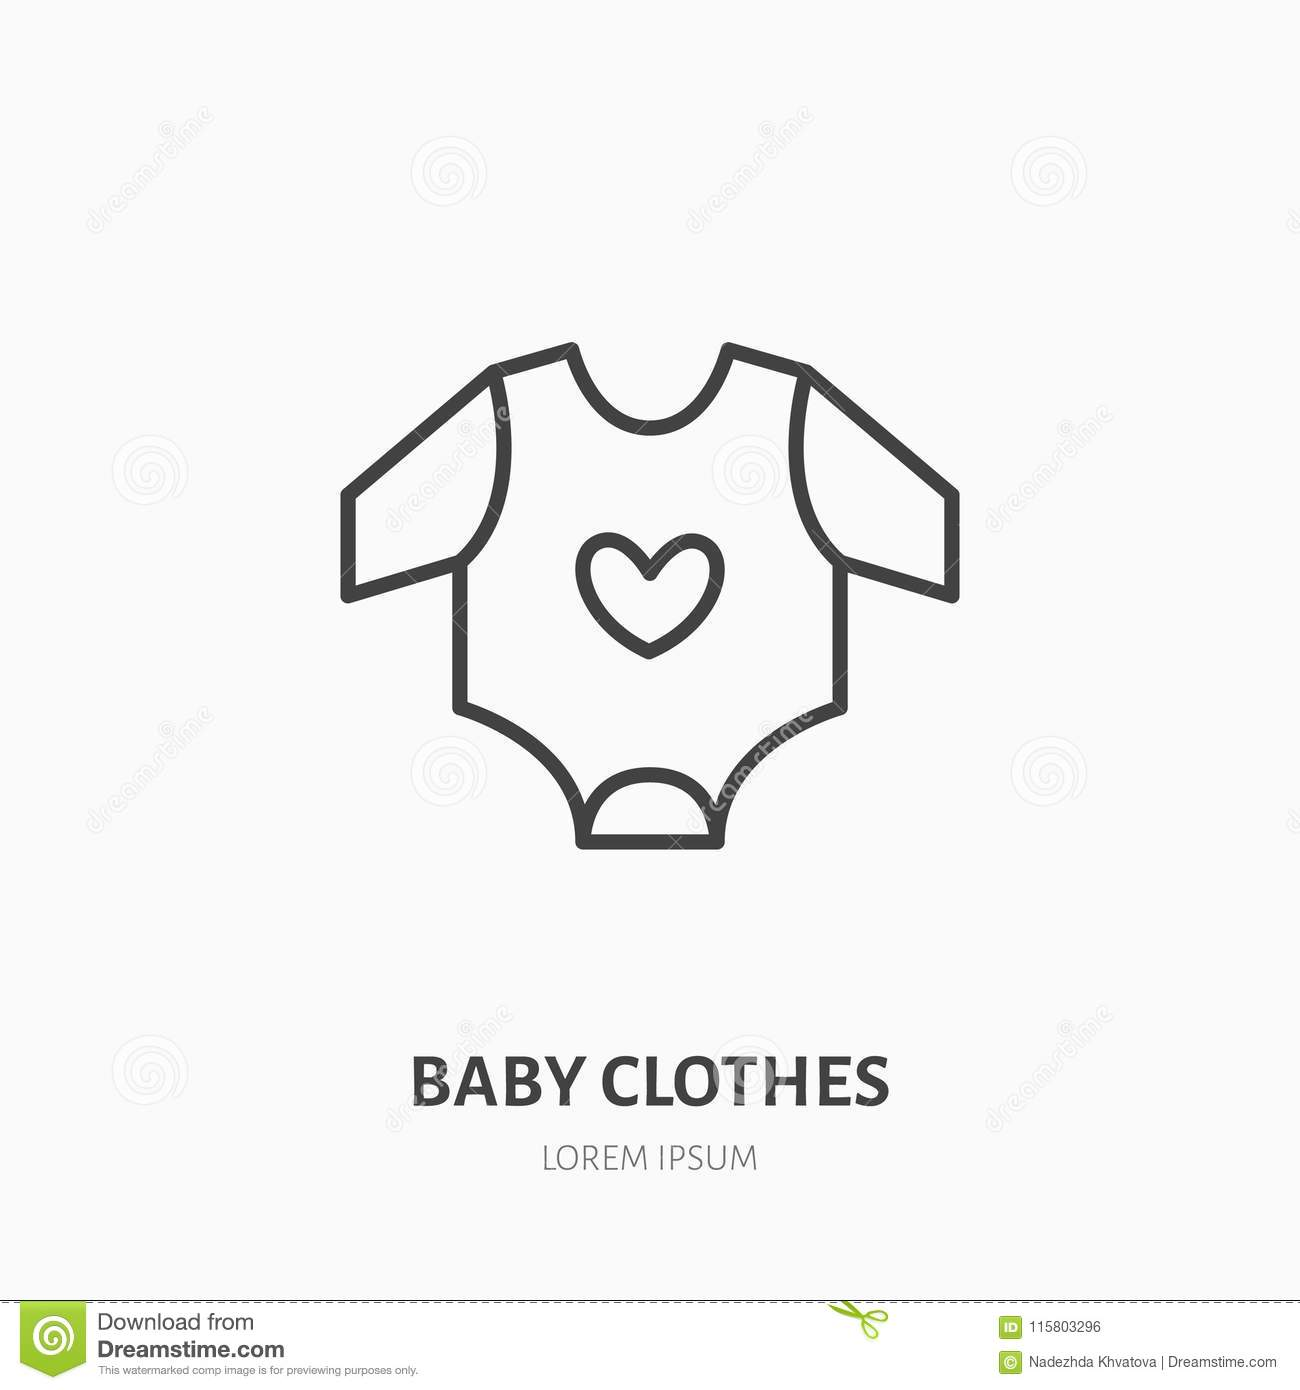 75f8ce7f3c45 Baby Bodysuit Flat Line Icon. Children Apparel Store Sign. Thin ...